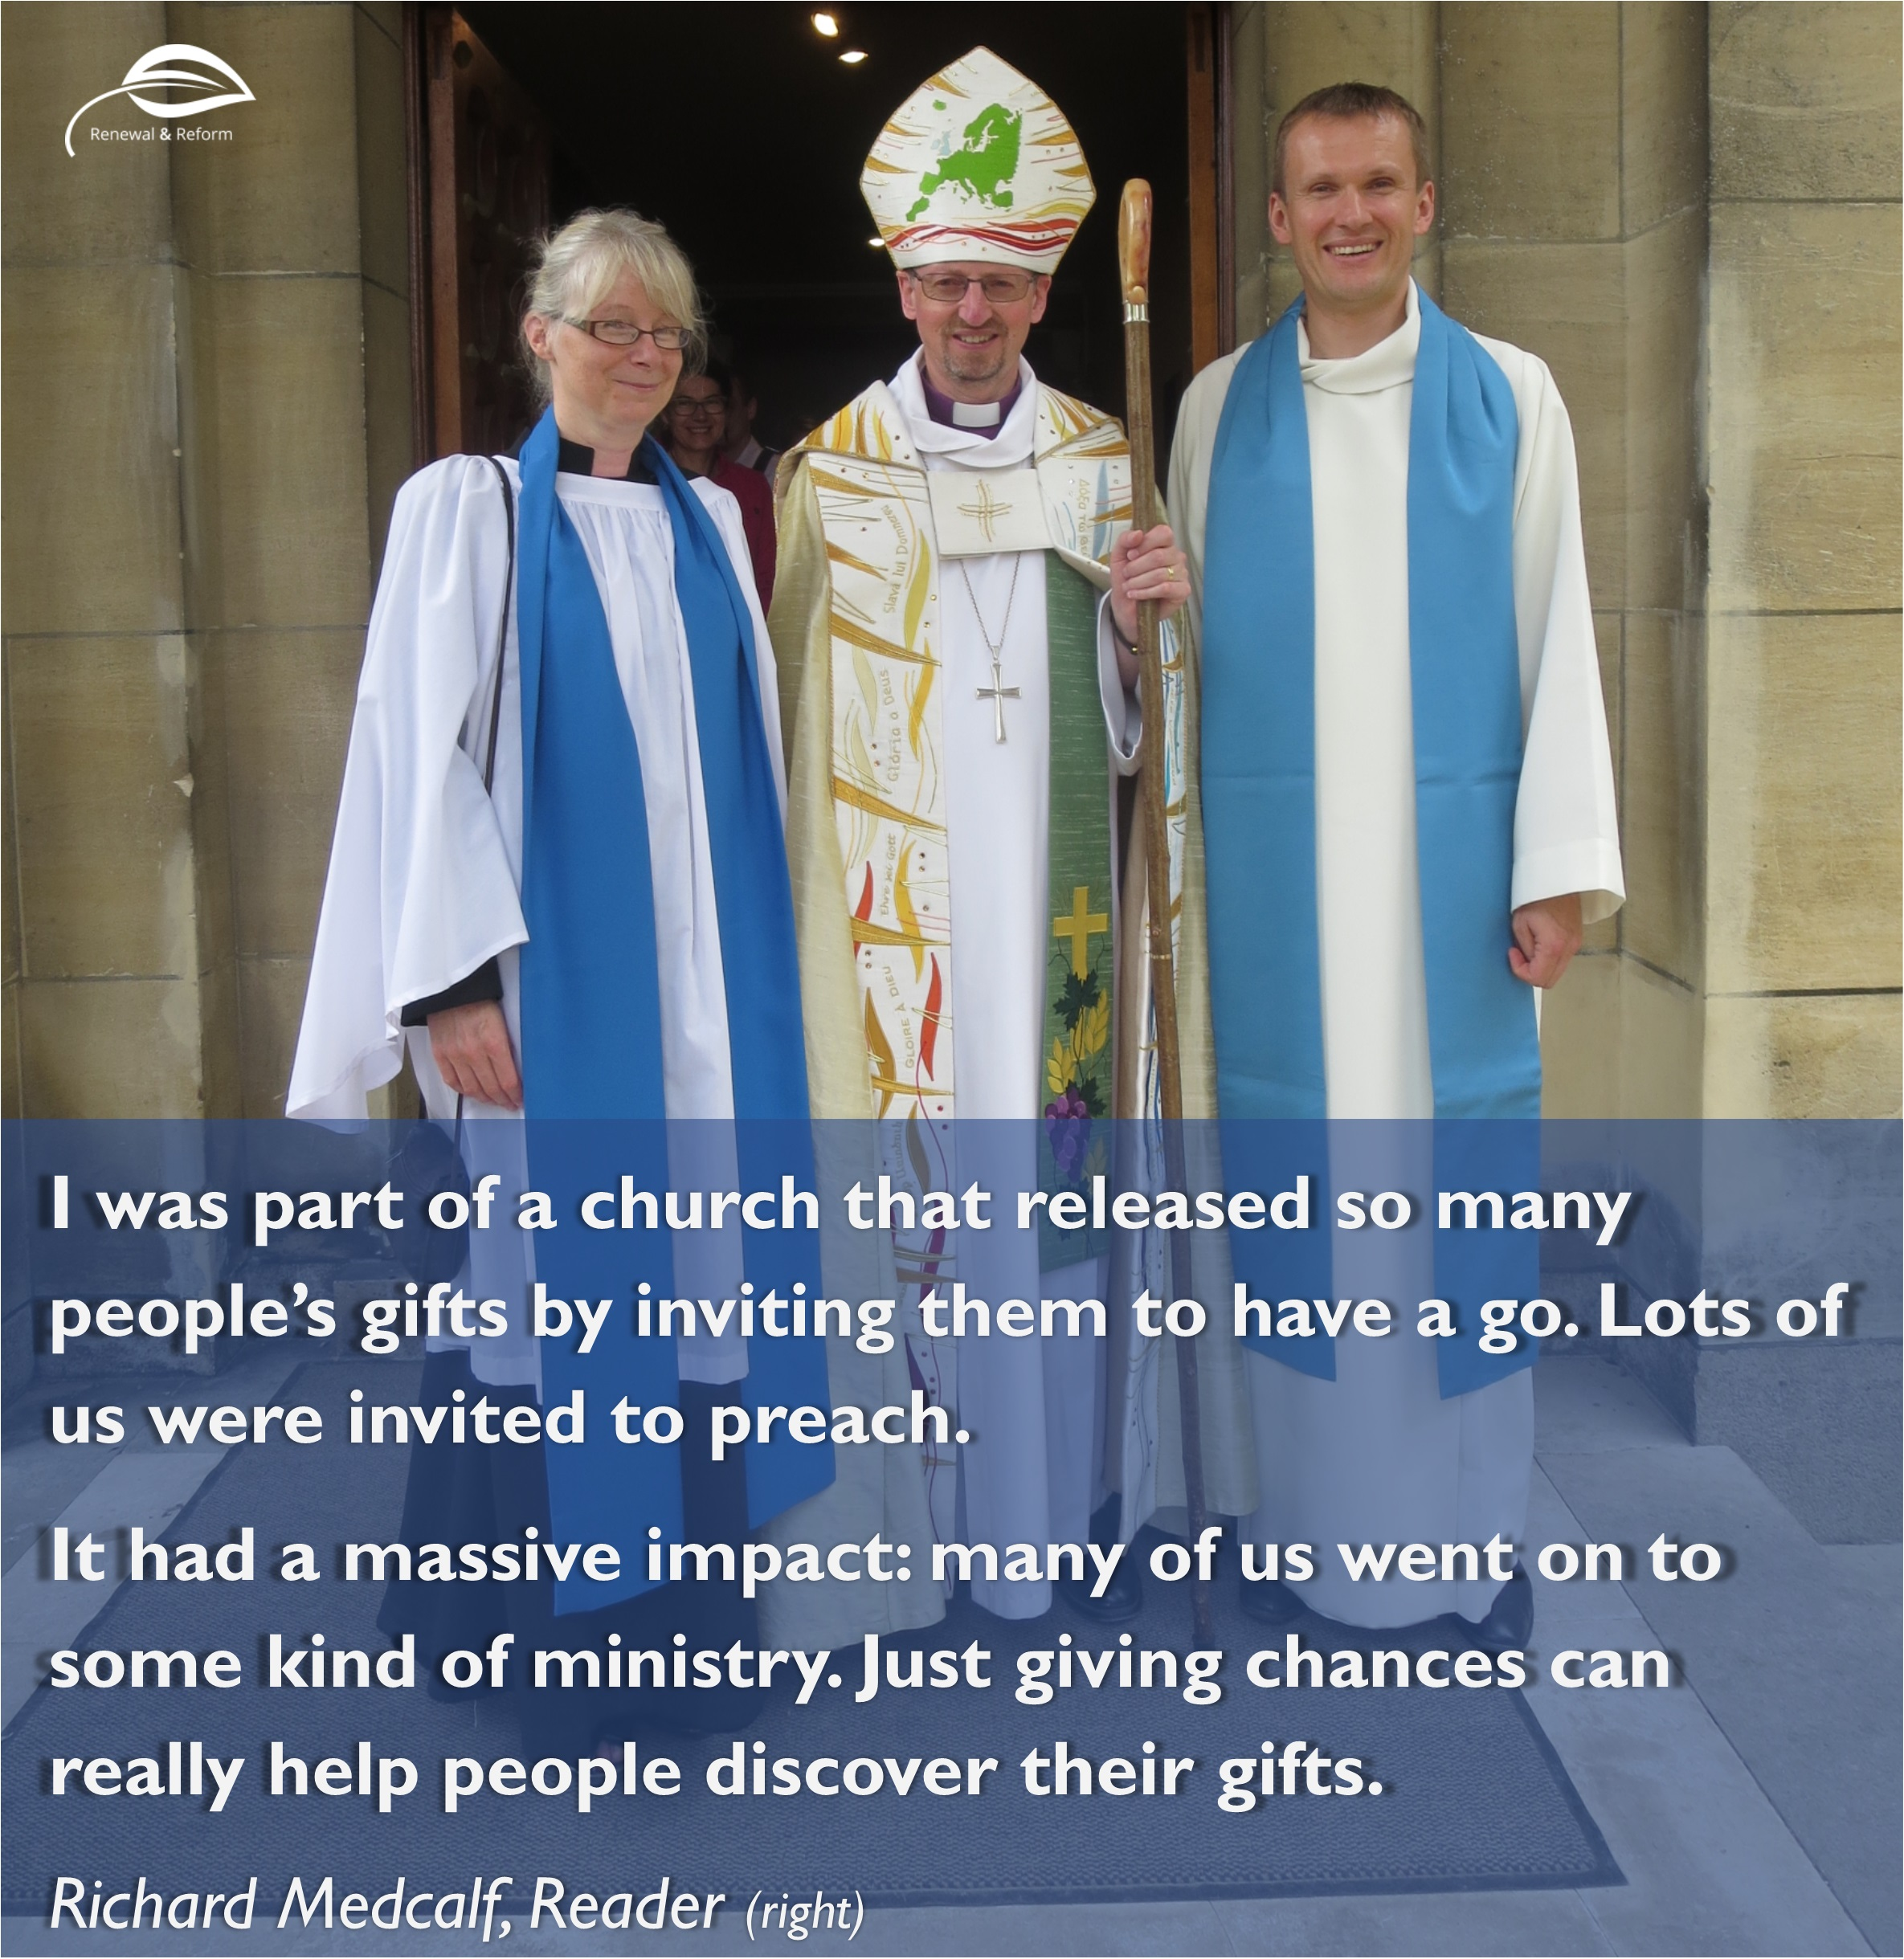 Richard Medcalf. Reader. I was part of a church that released so many people's gifts by inviting them to have a go. Lots of us were invited to preach. It had a massive impact: many of us went to some kind of ministry. Just giving chances can really help people discover their gifts.